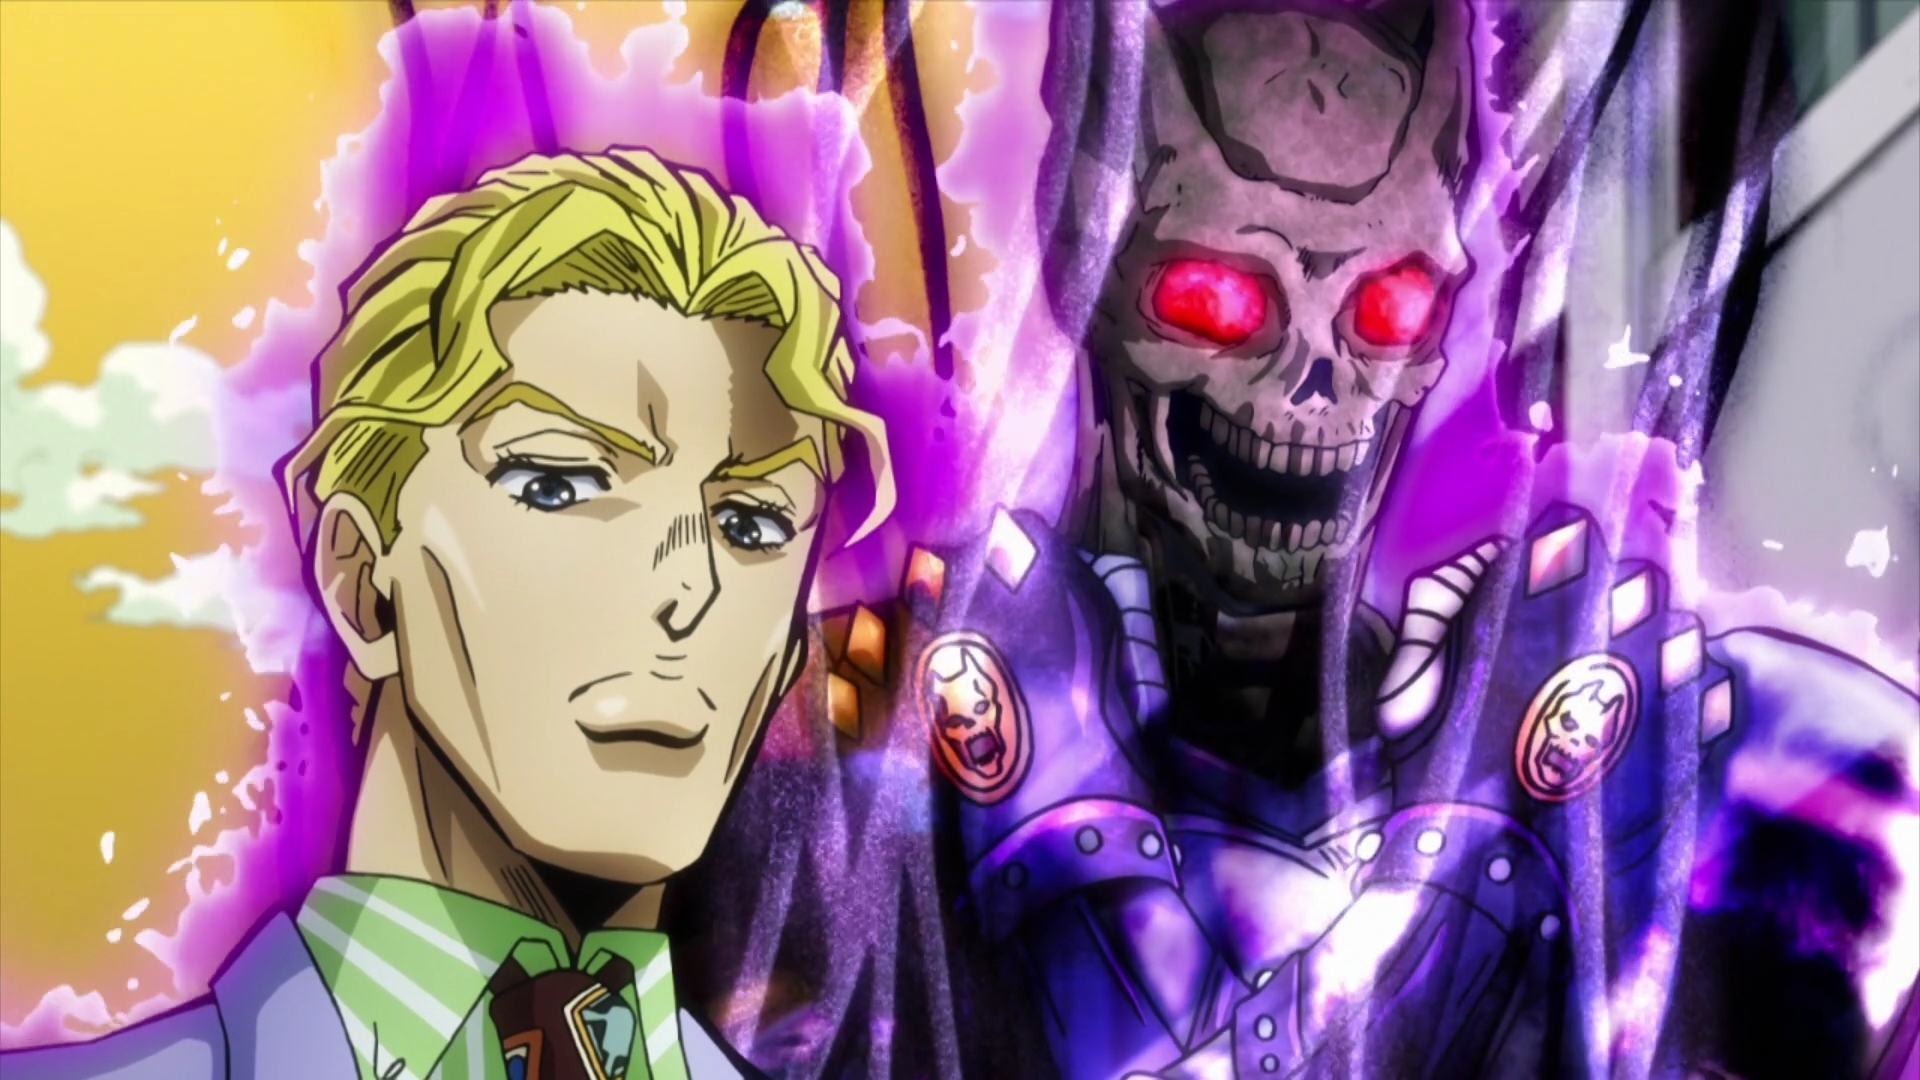 Who's the Better Kira (Death Note and Jojo's Bizarre